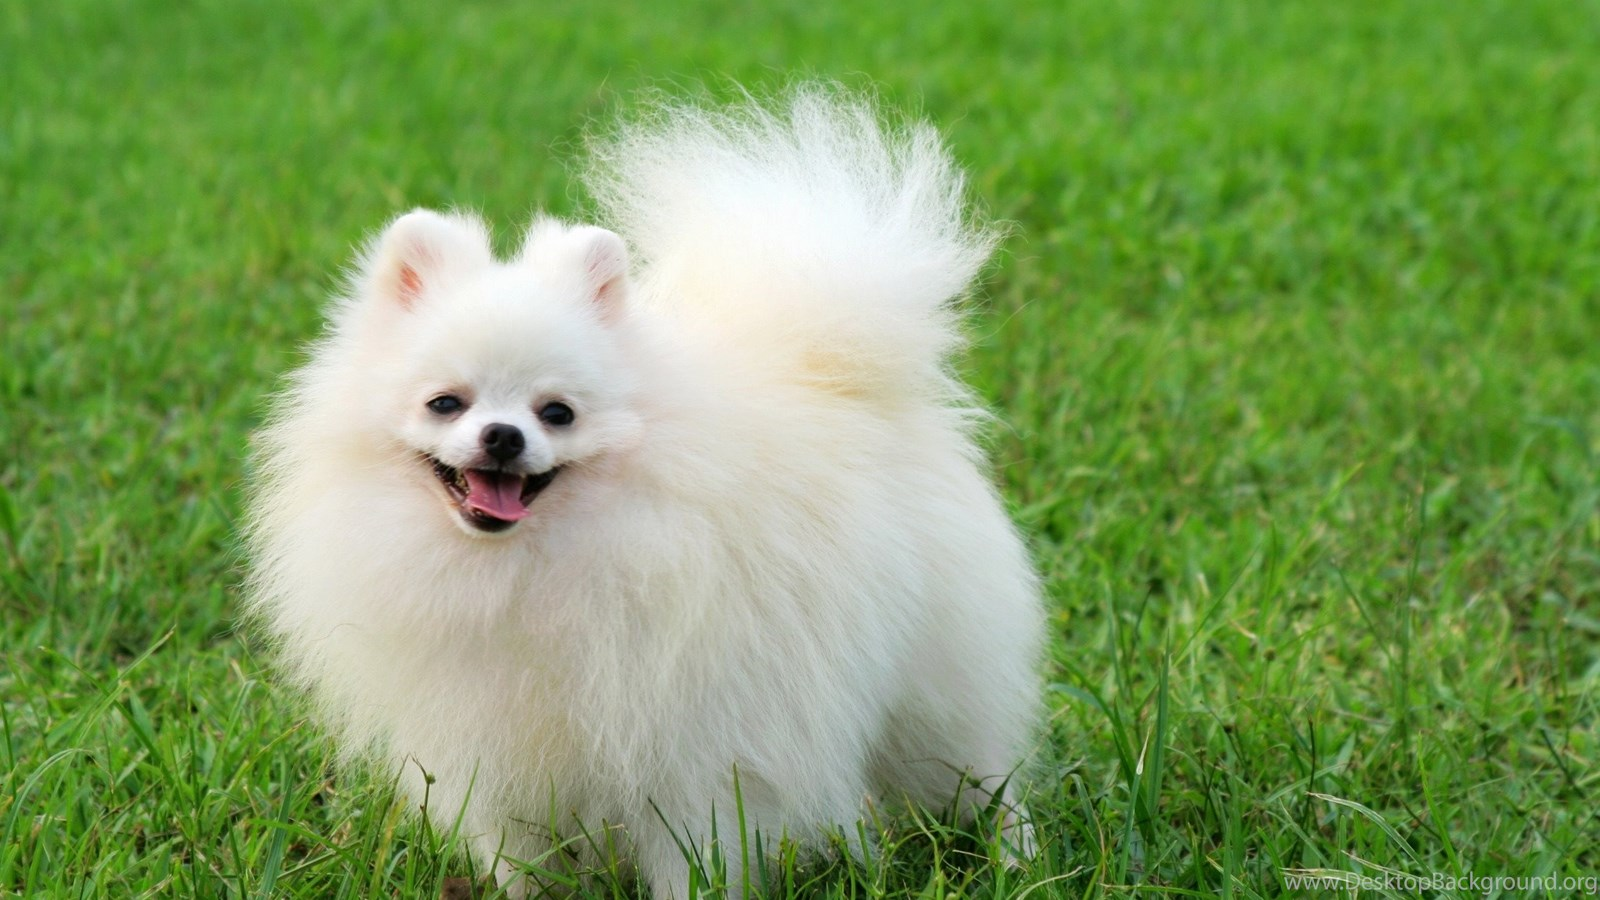 Pictures Of Pomeranian Puppies Wallpapers Hd Fine Cute Pomeranian Puppy Wallpaper Hd 3250822 Hd Wallpaper Backgrounds Download